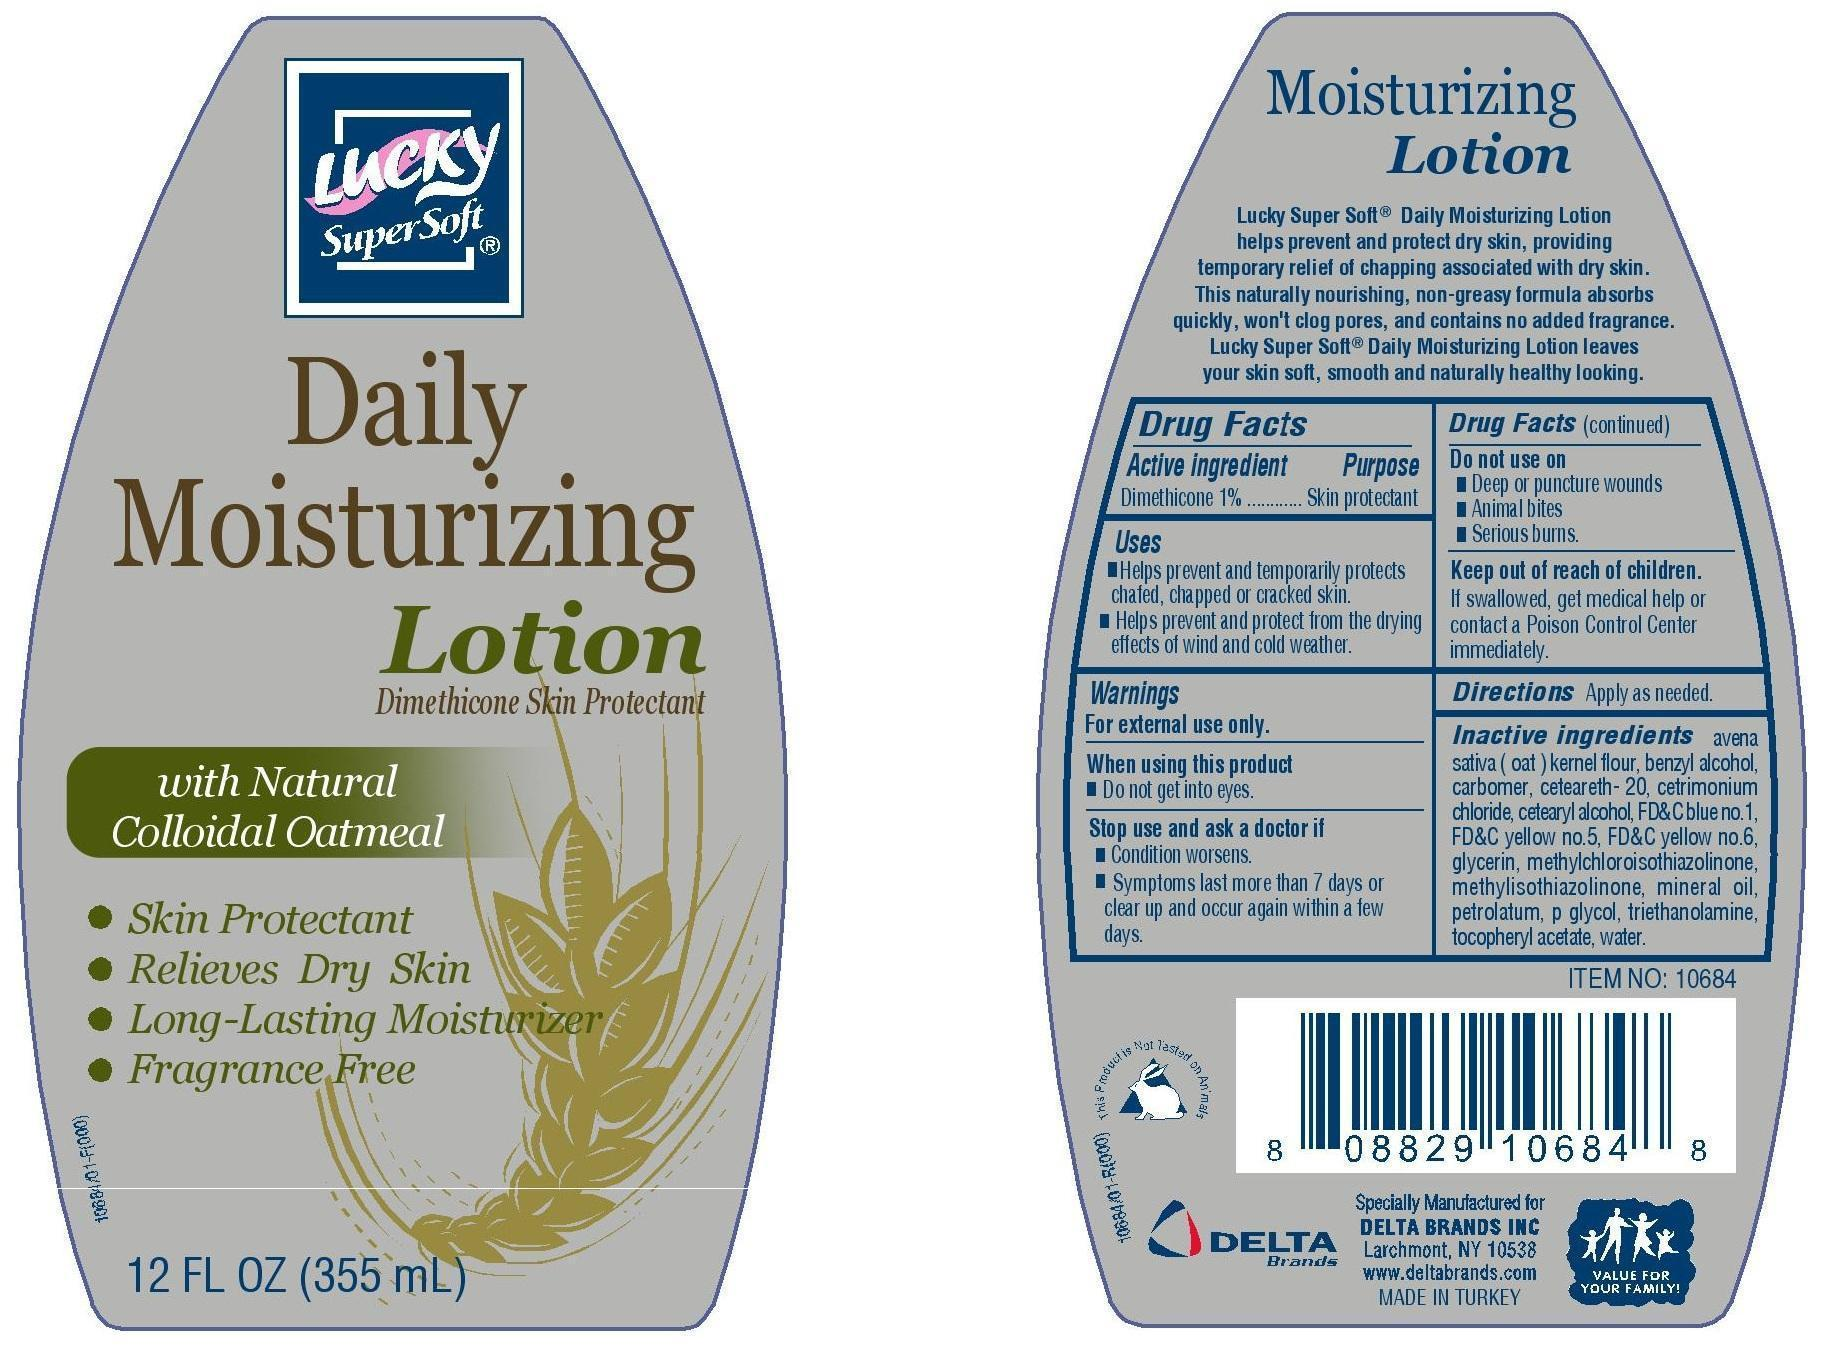 Lucky Daily Moisturizing (Dimethicone) Lotion [Delta Brands Inc]